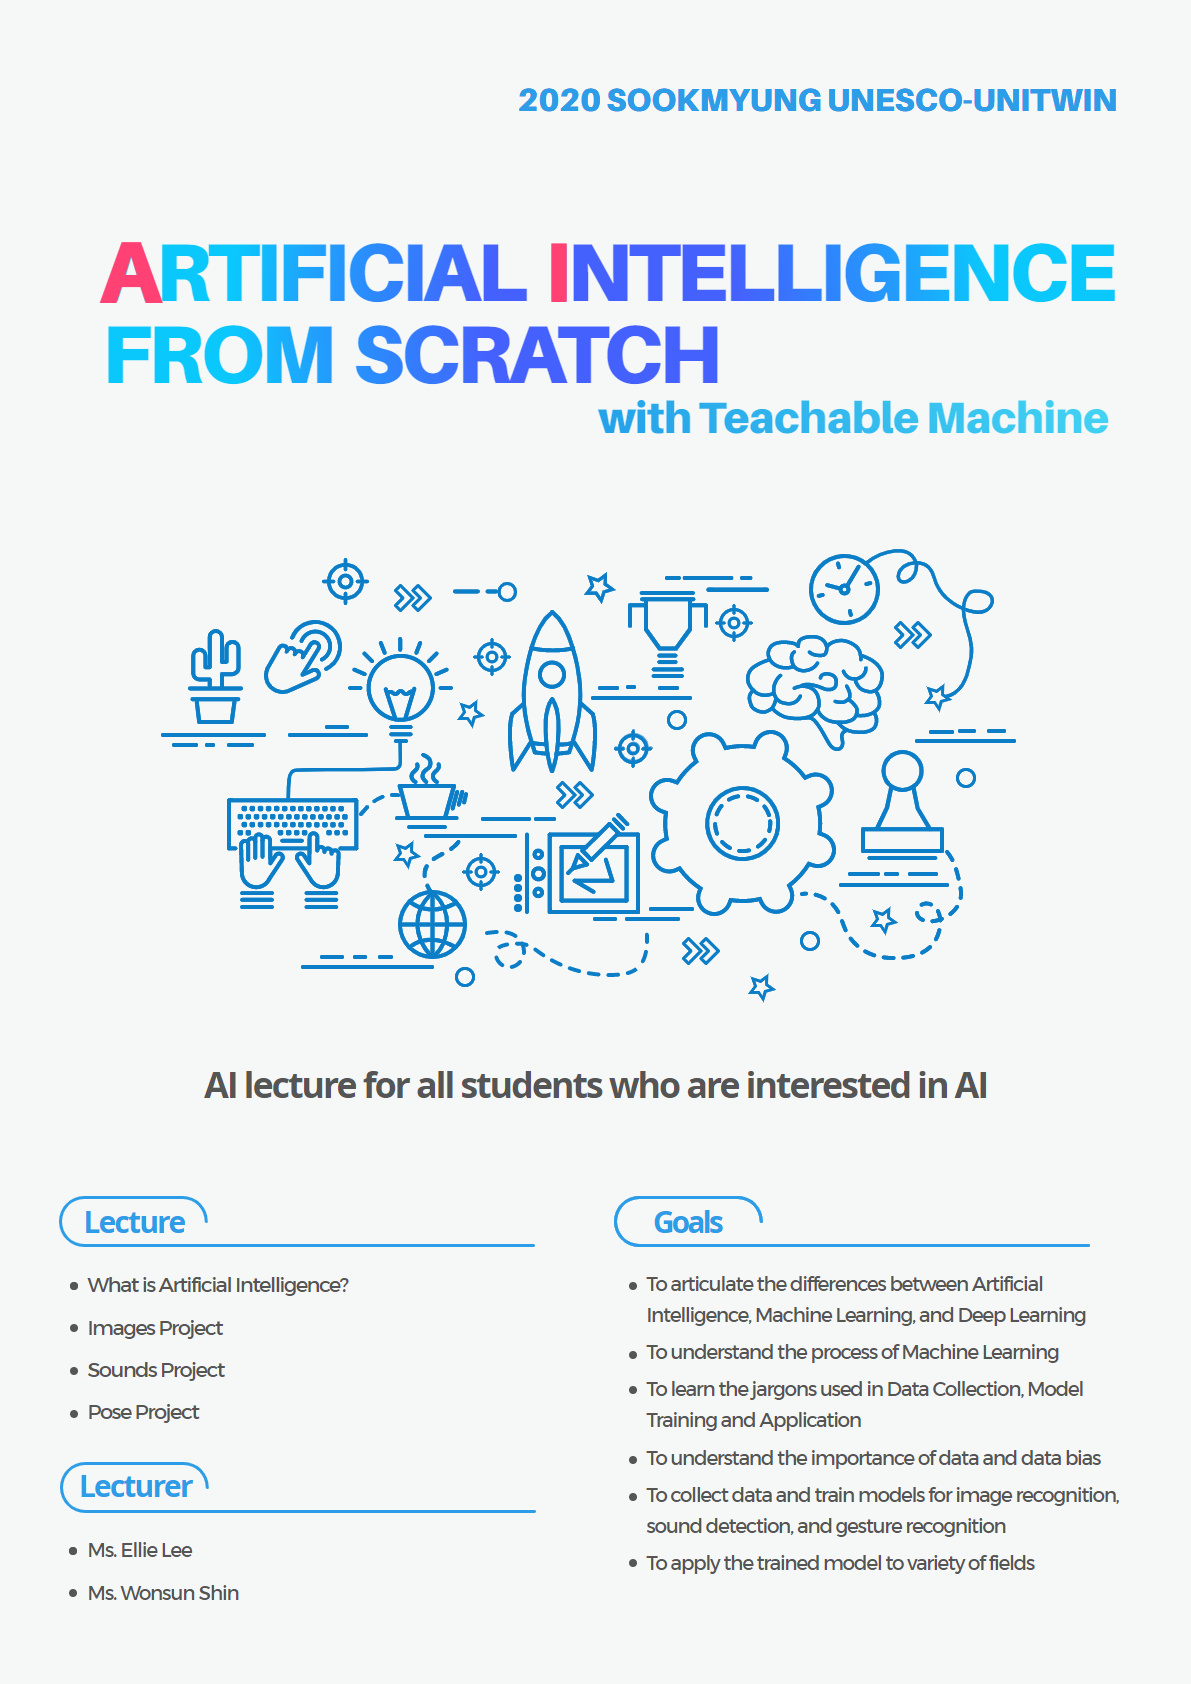 Artificial Intelligence from Scratch